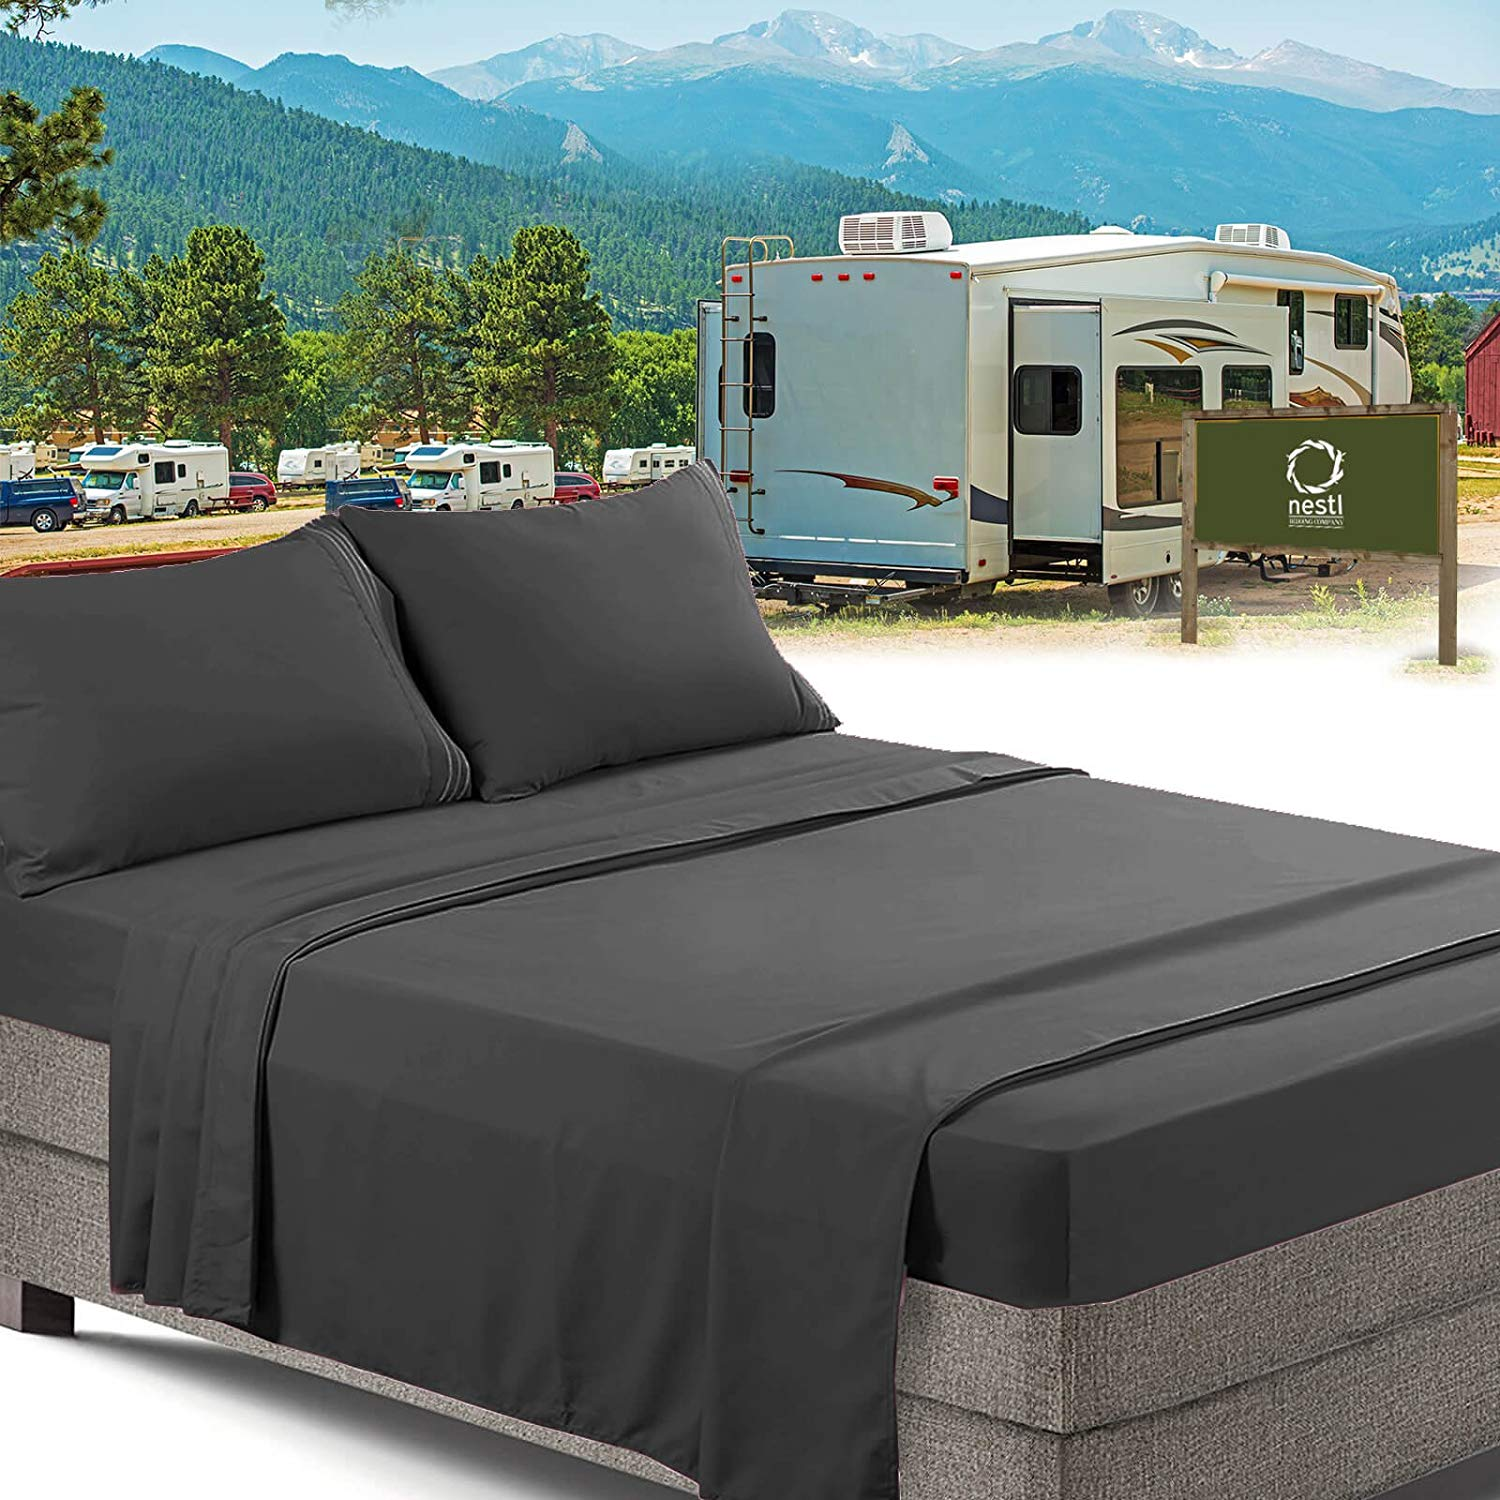 Picture of: Rv Short Queen Bed Sheets Set Bedding Sheets Set For Campers 4 Piece Bed Set Deep Pockets Fitted Sheet 100 Luxury Soft Microfiber Hypoallergenic Cool Breathable Gray Walmart Com Walmart Com